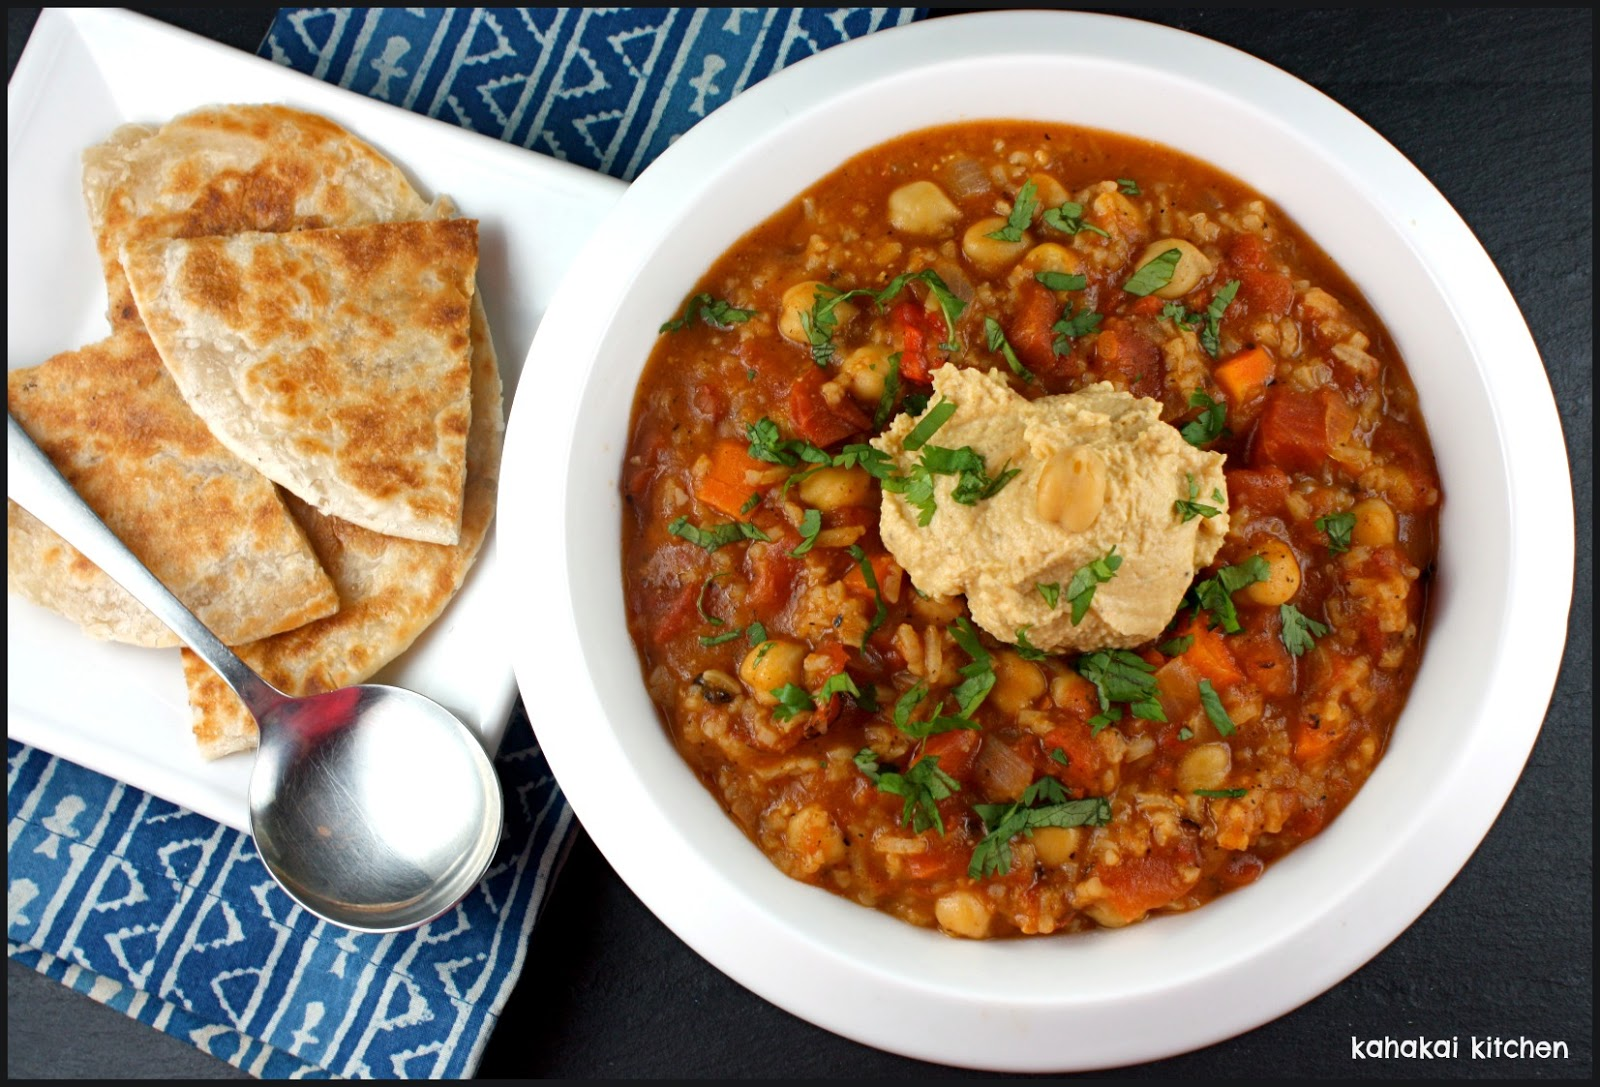 Kahakai Kitchen: Indian-Spiced Tomato, Rice, & Chickpea Soup (With a ...